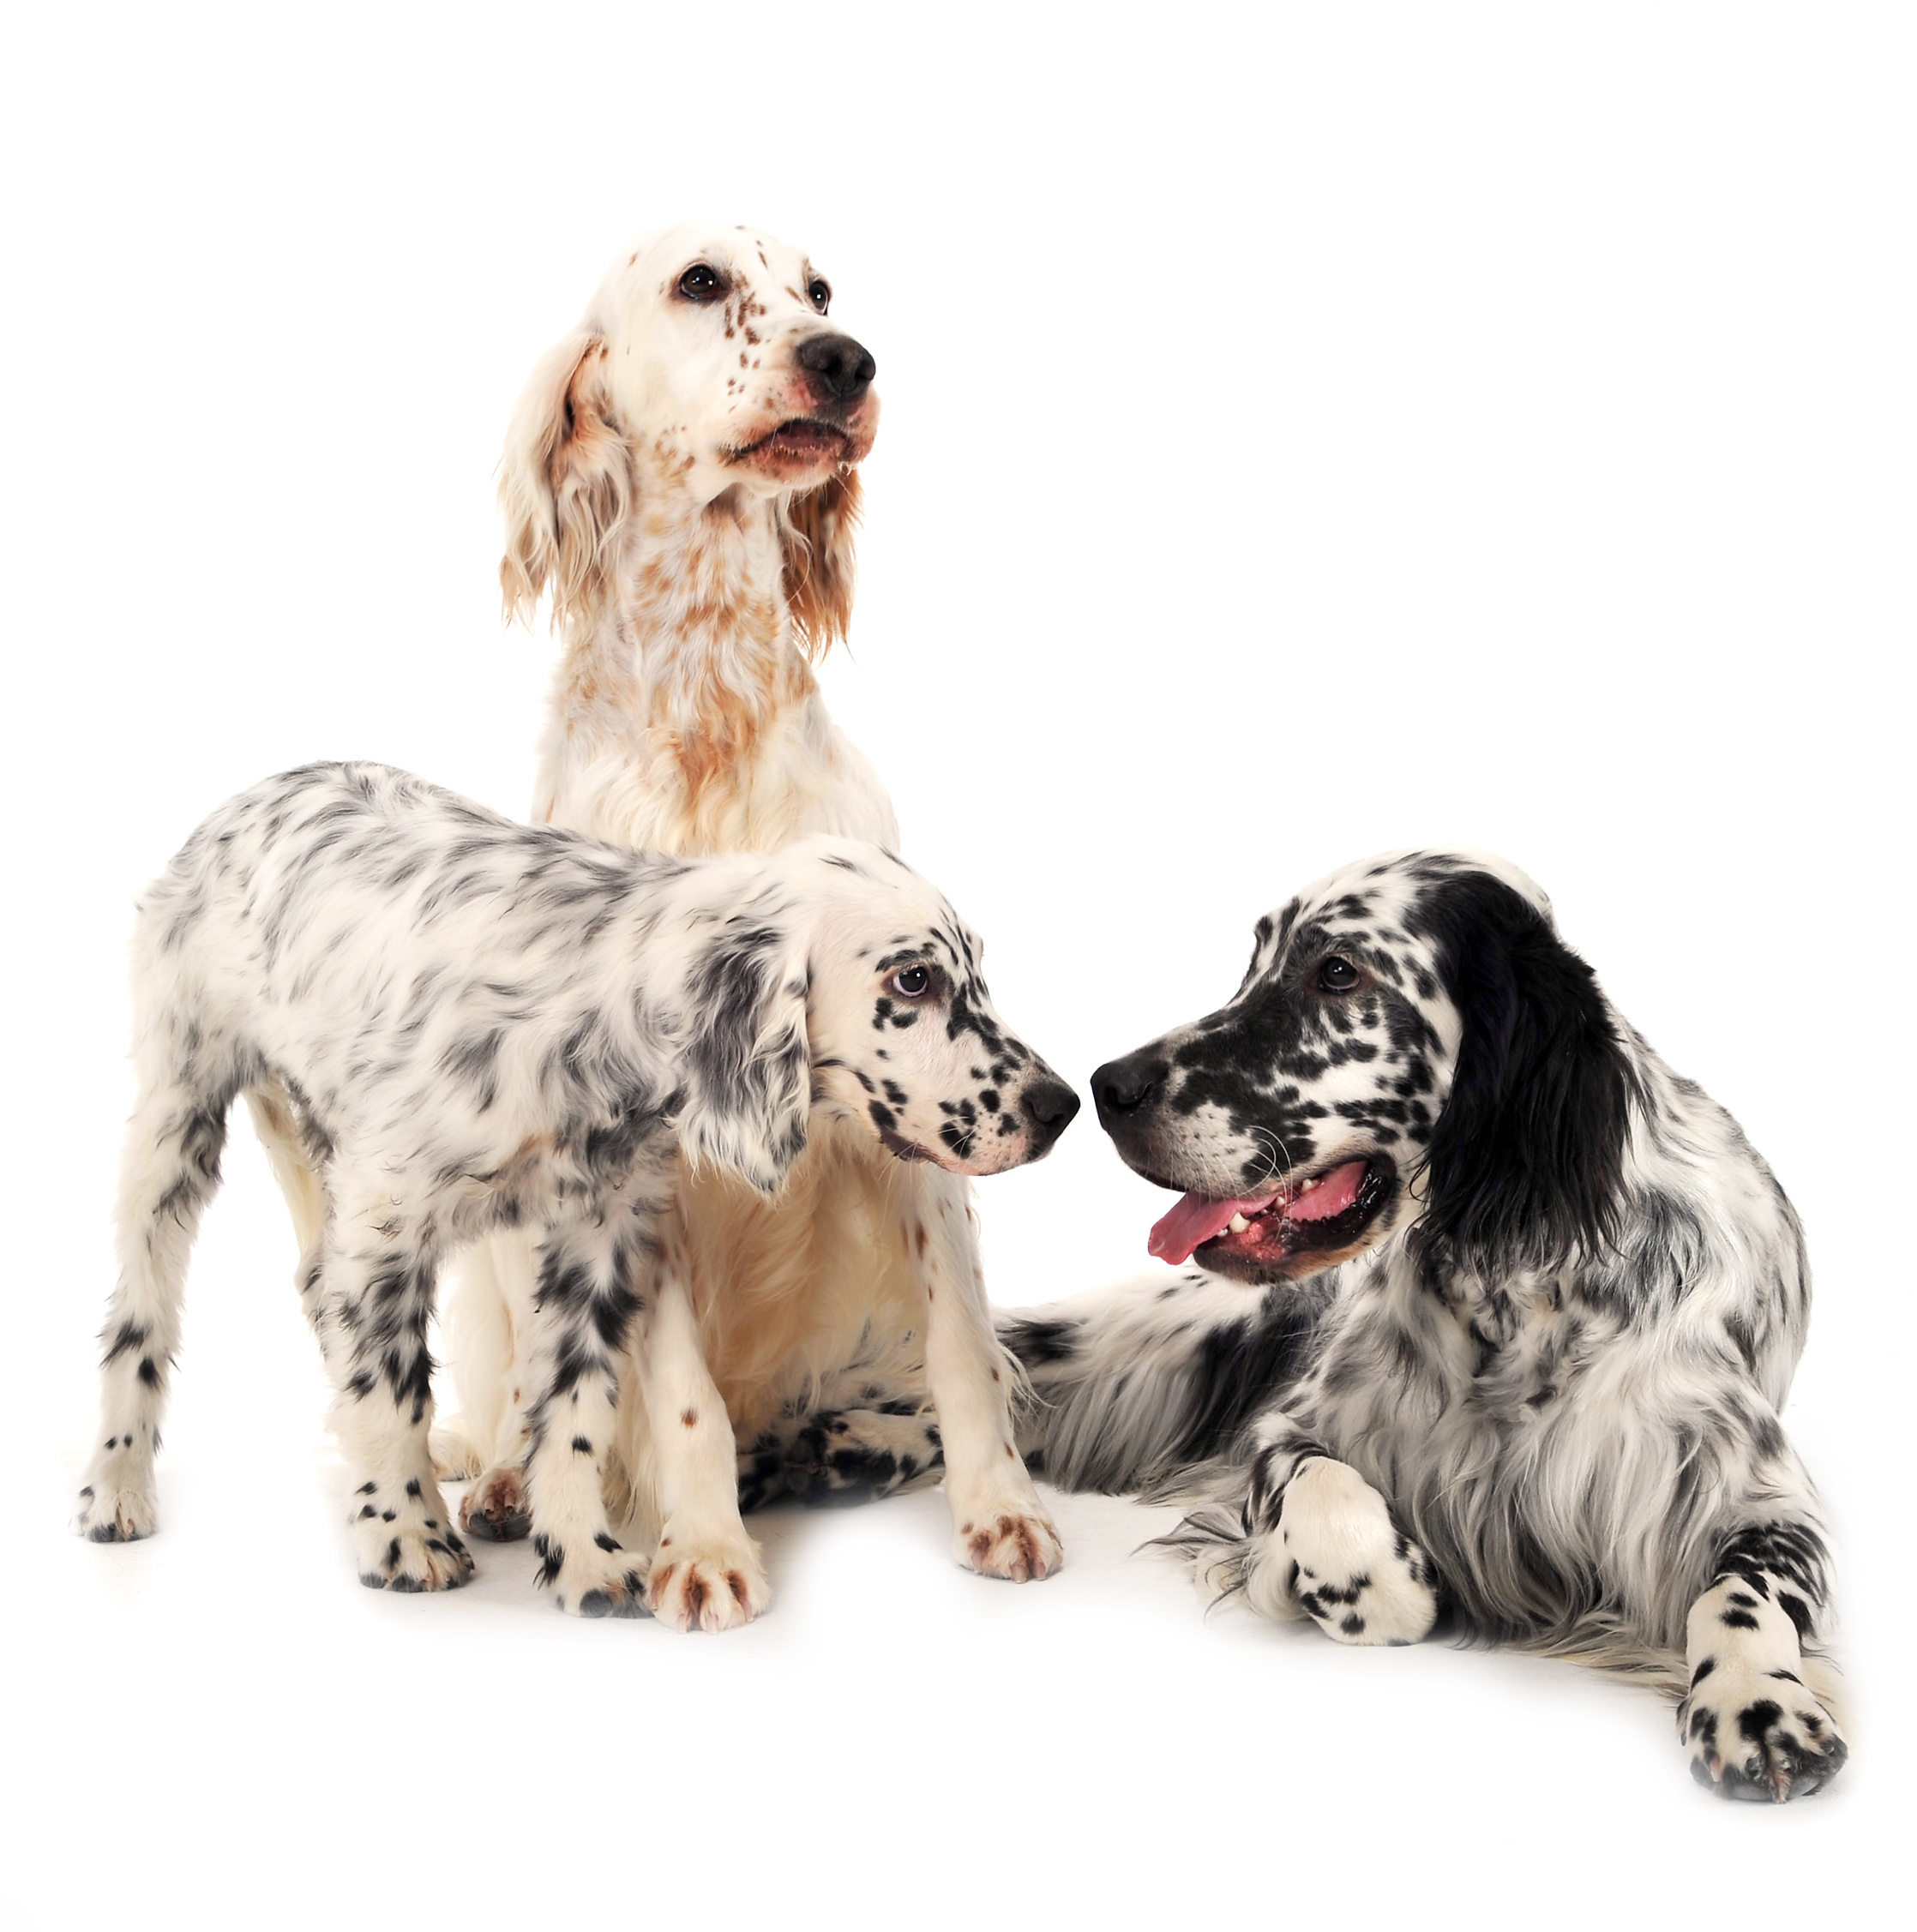 Three English Setters (two adults and one puppy) in front of a white background